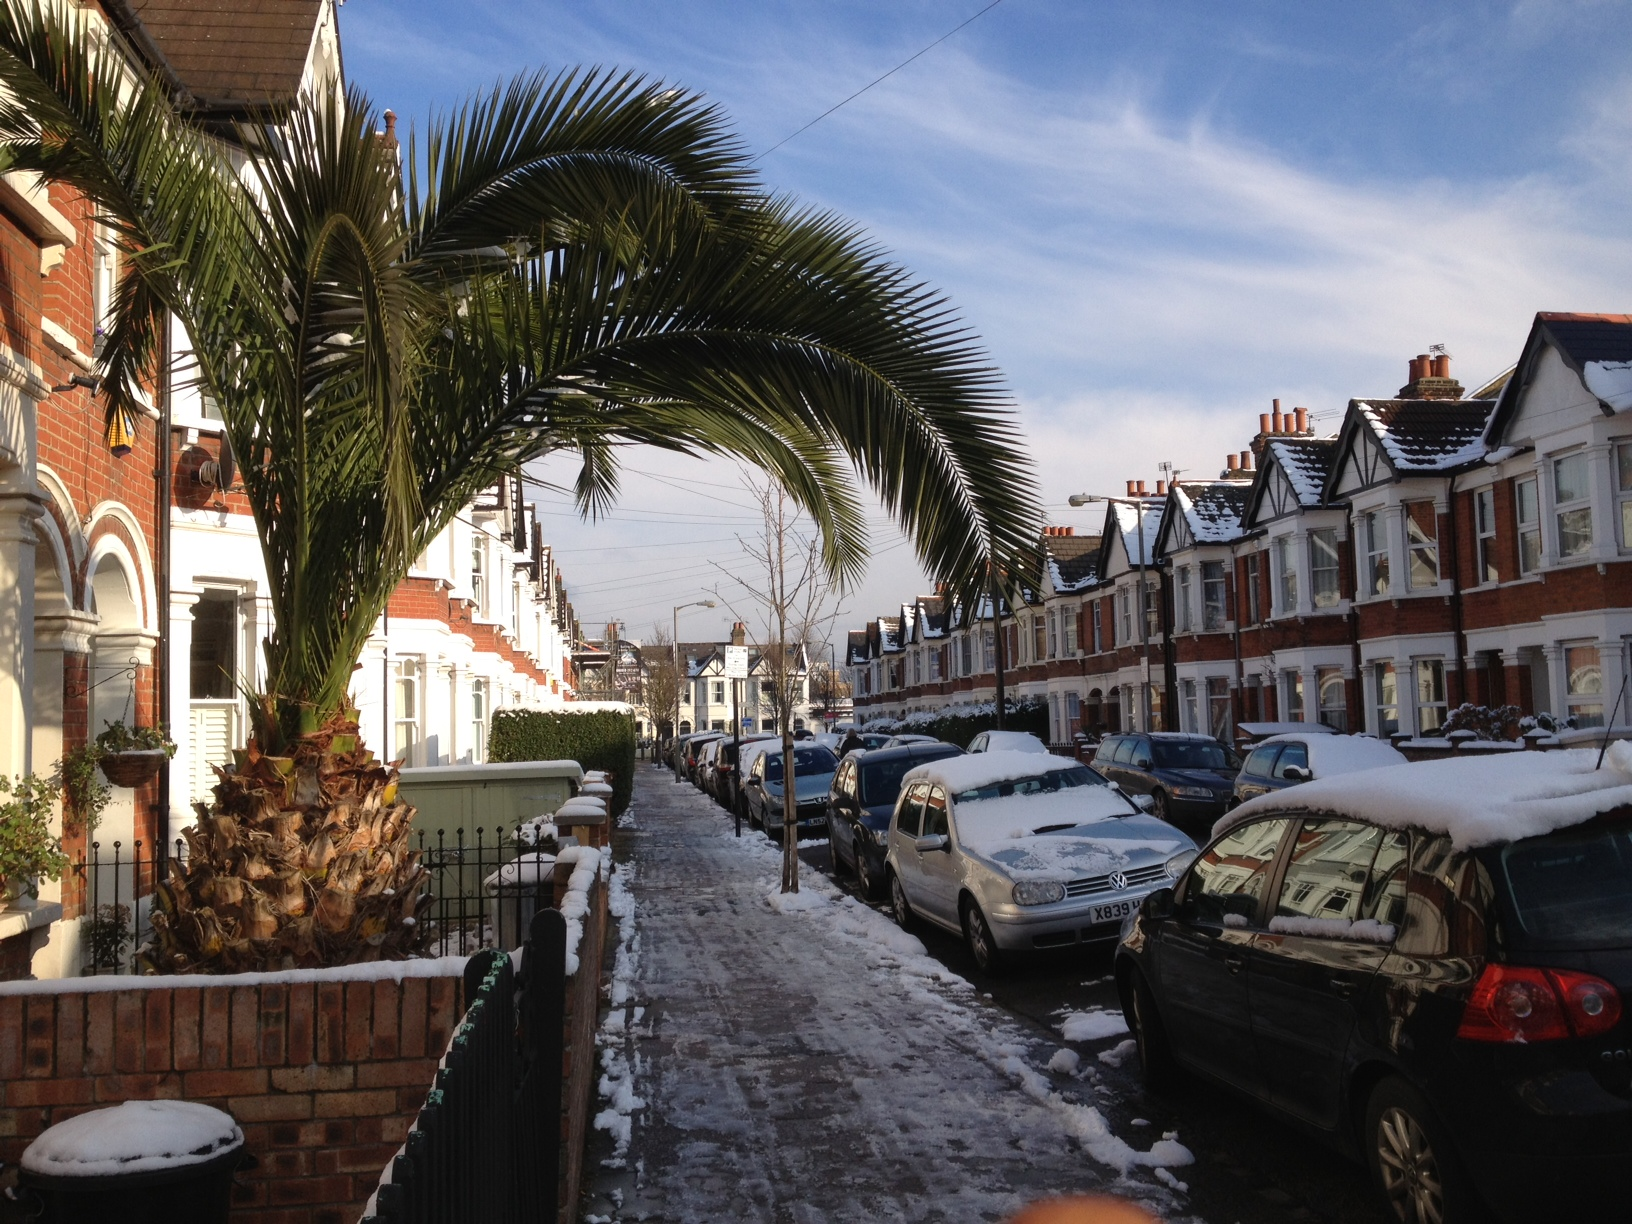 Snow and Palmtrees London